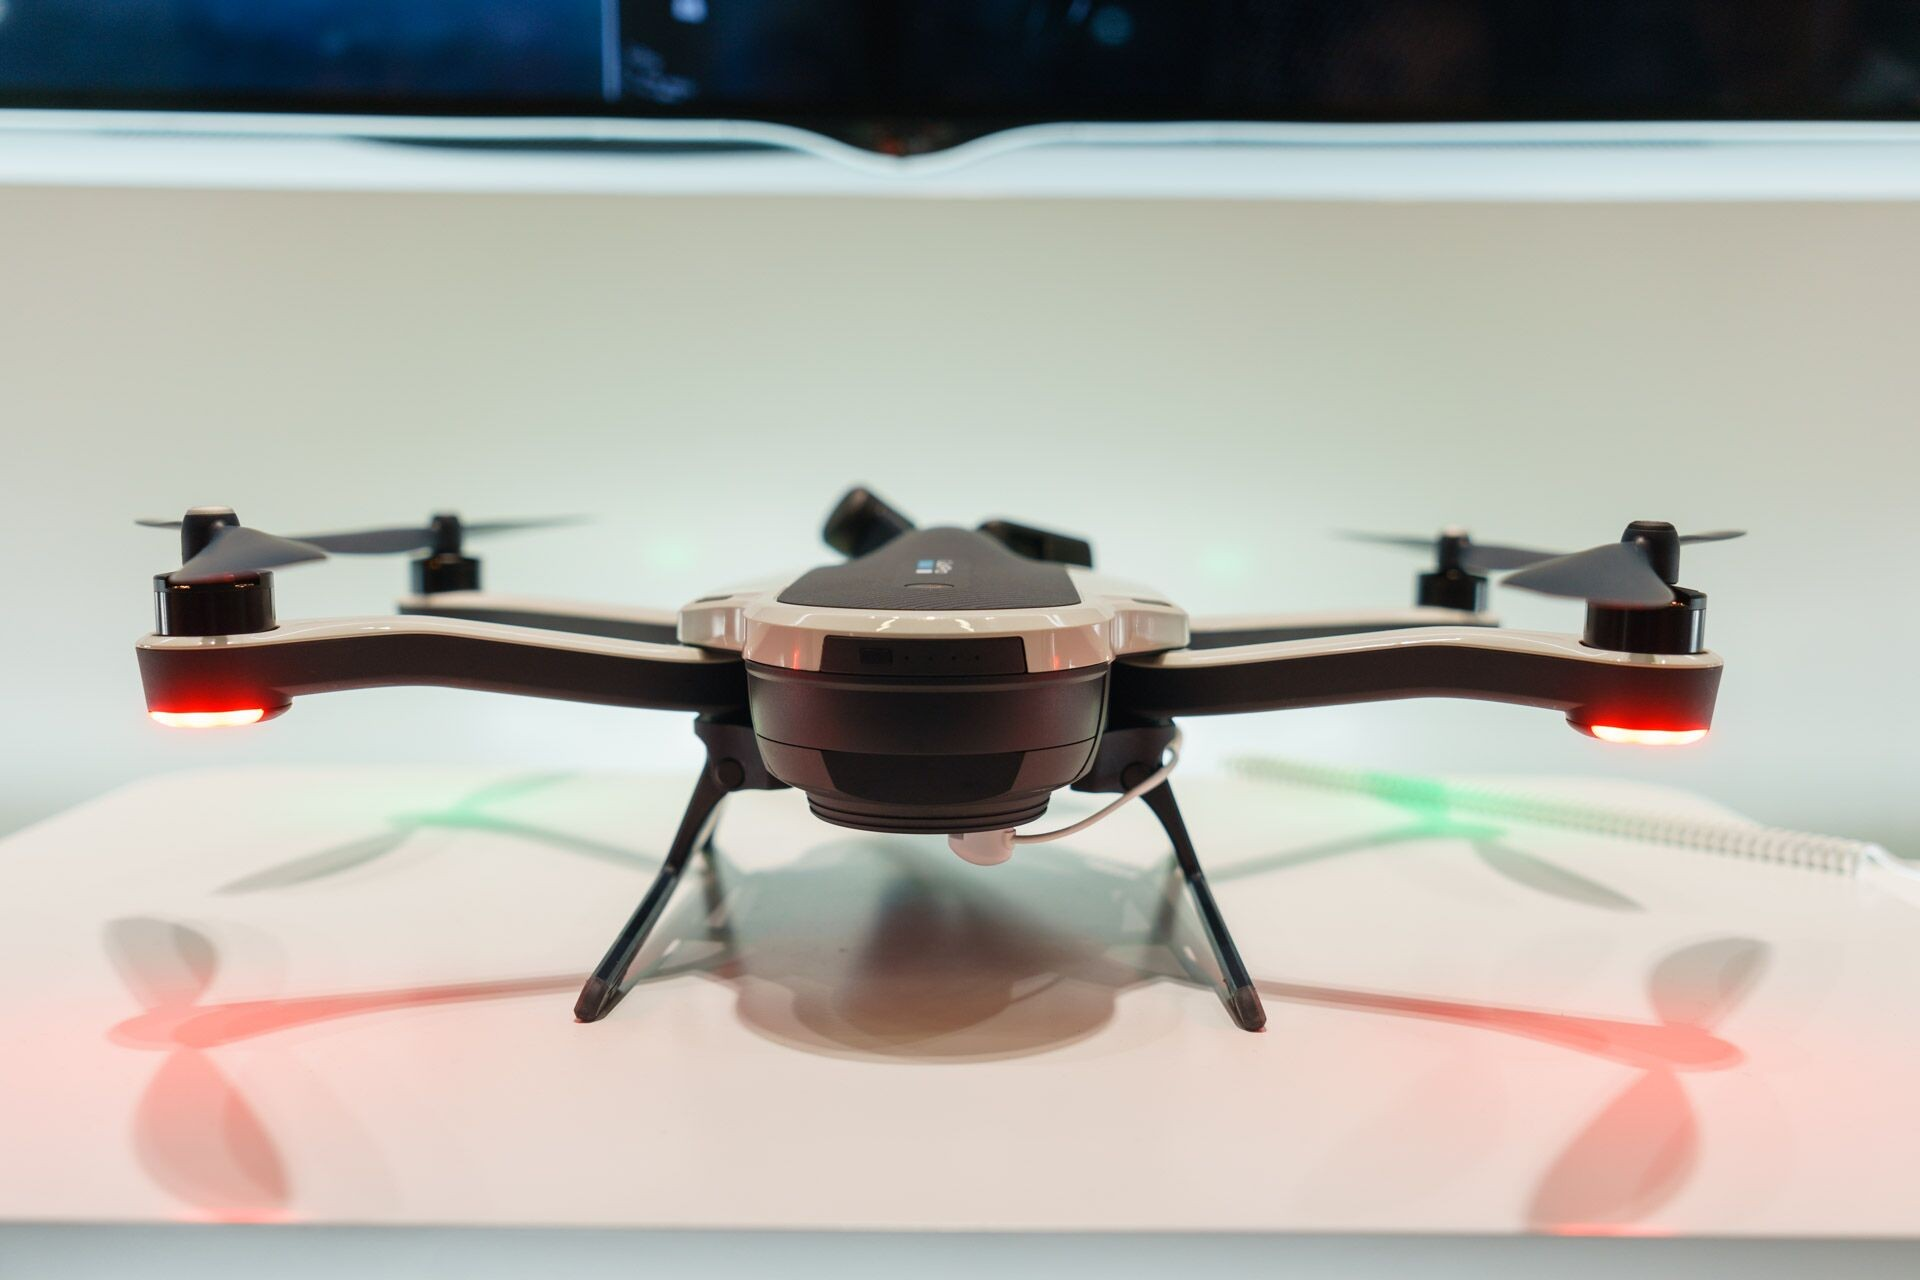 The [Karma](https://shop.gopro.com/karma) is a sleek-looking drone that packs the latest technology from GoPro.